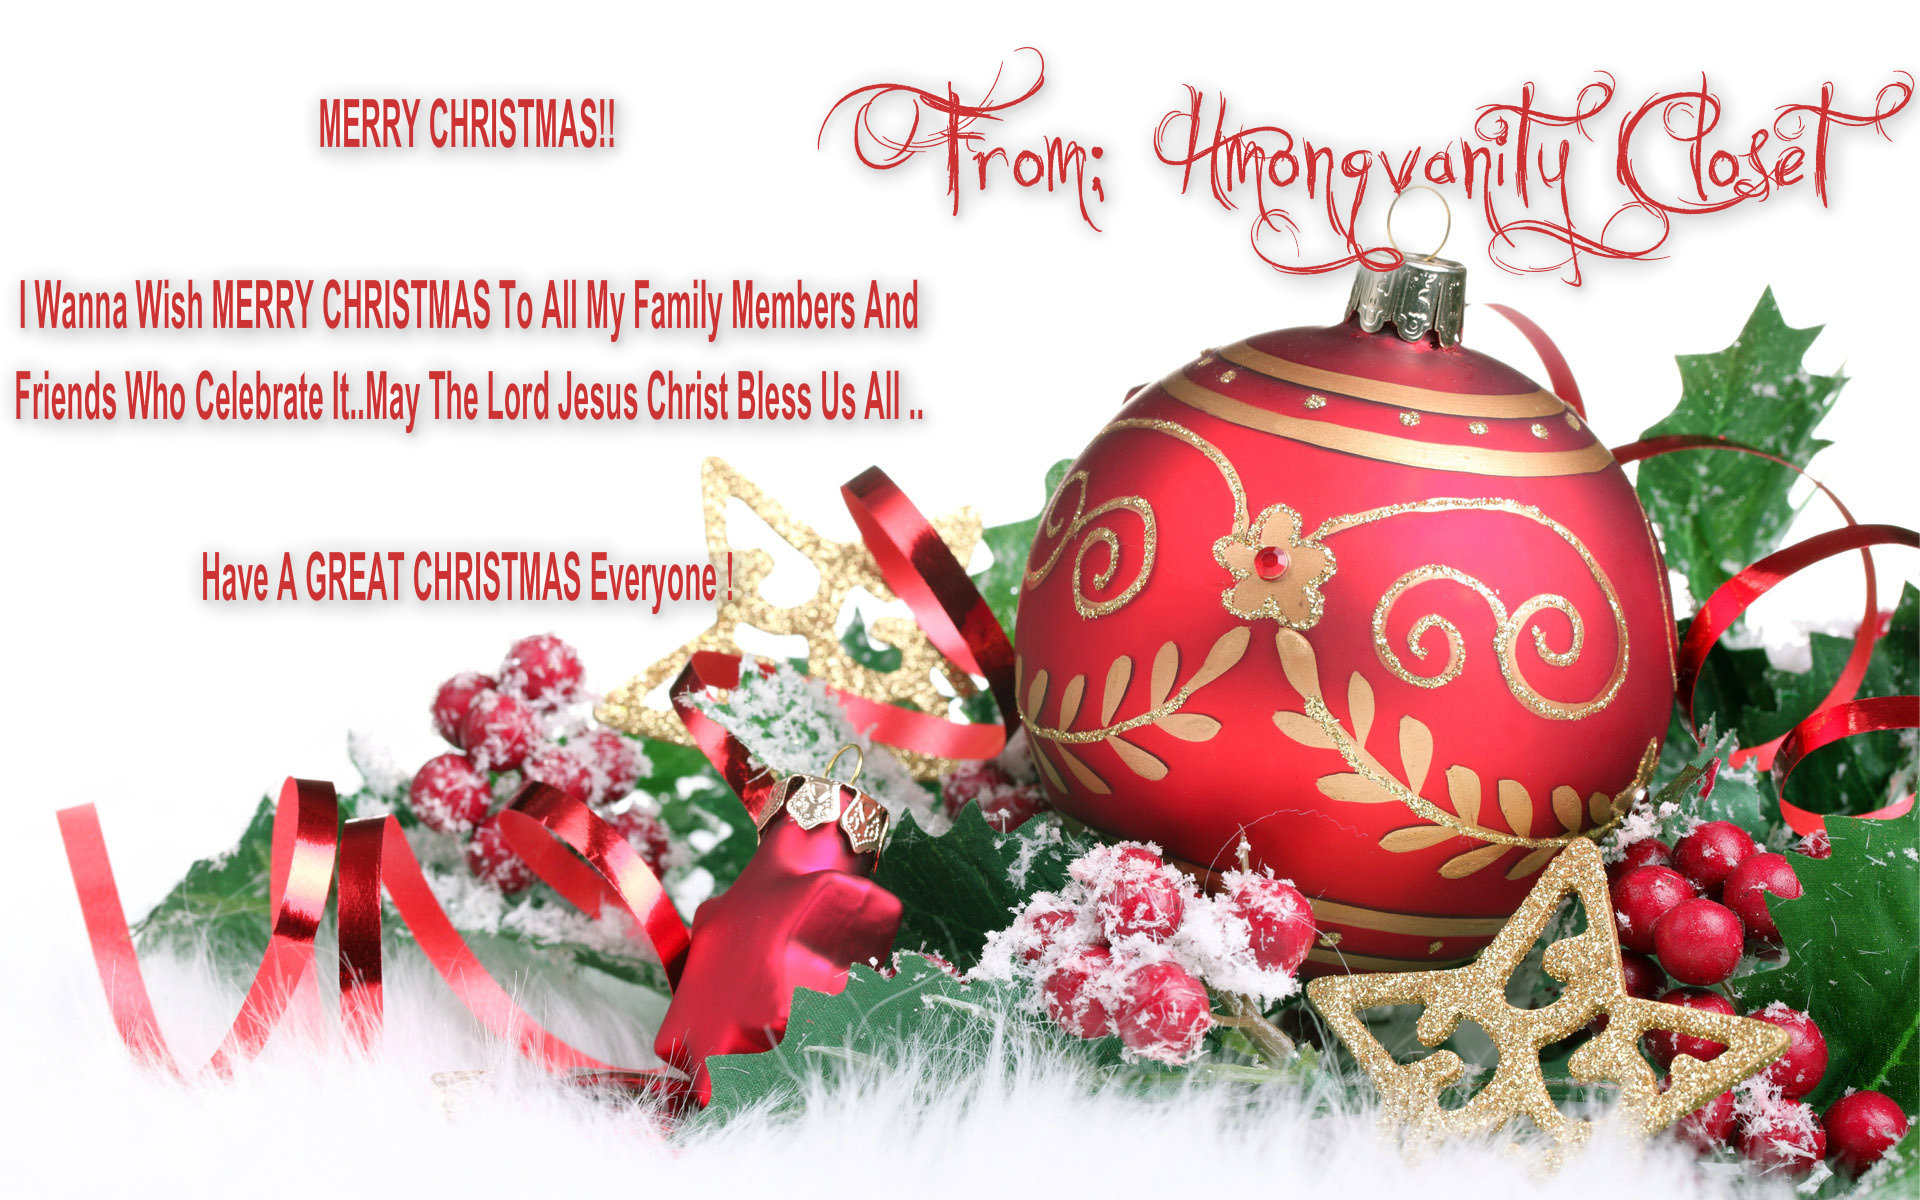 Merry Christmas and a happy New سال for